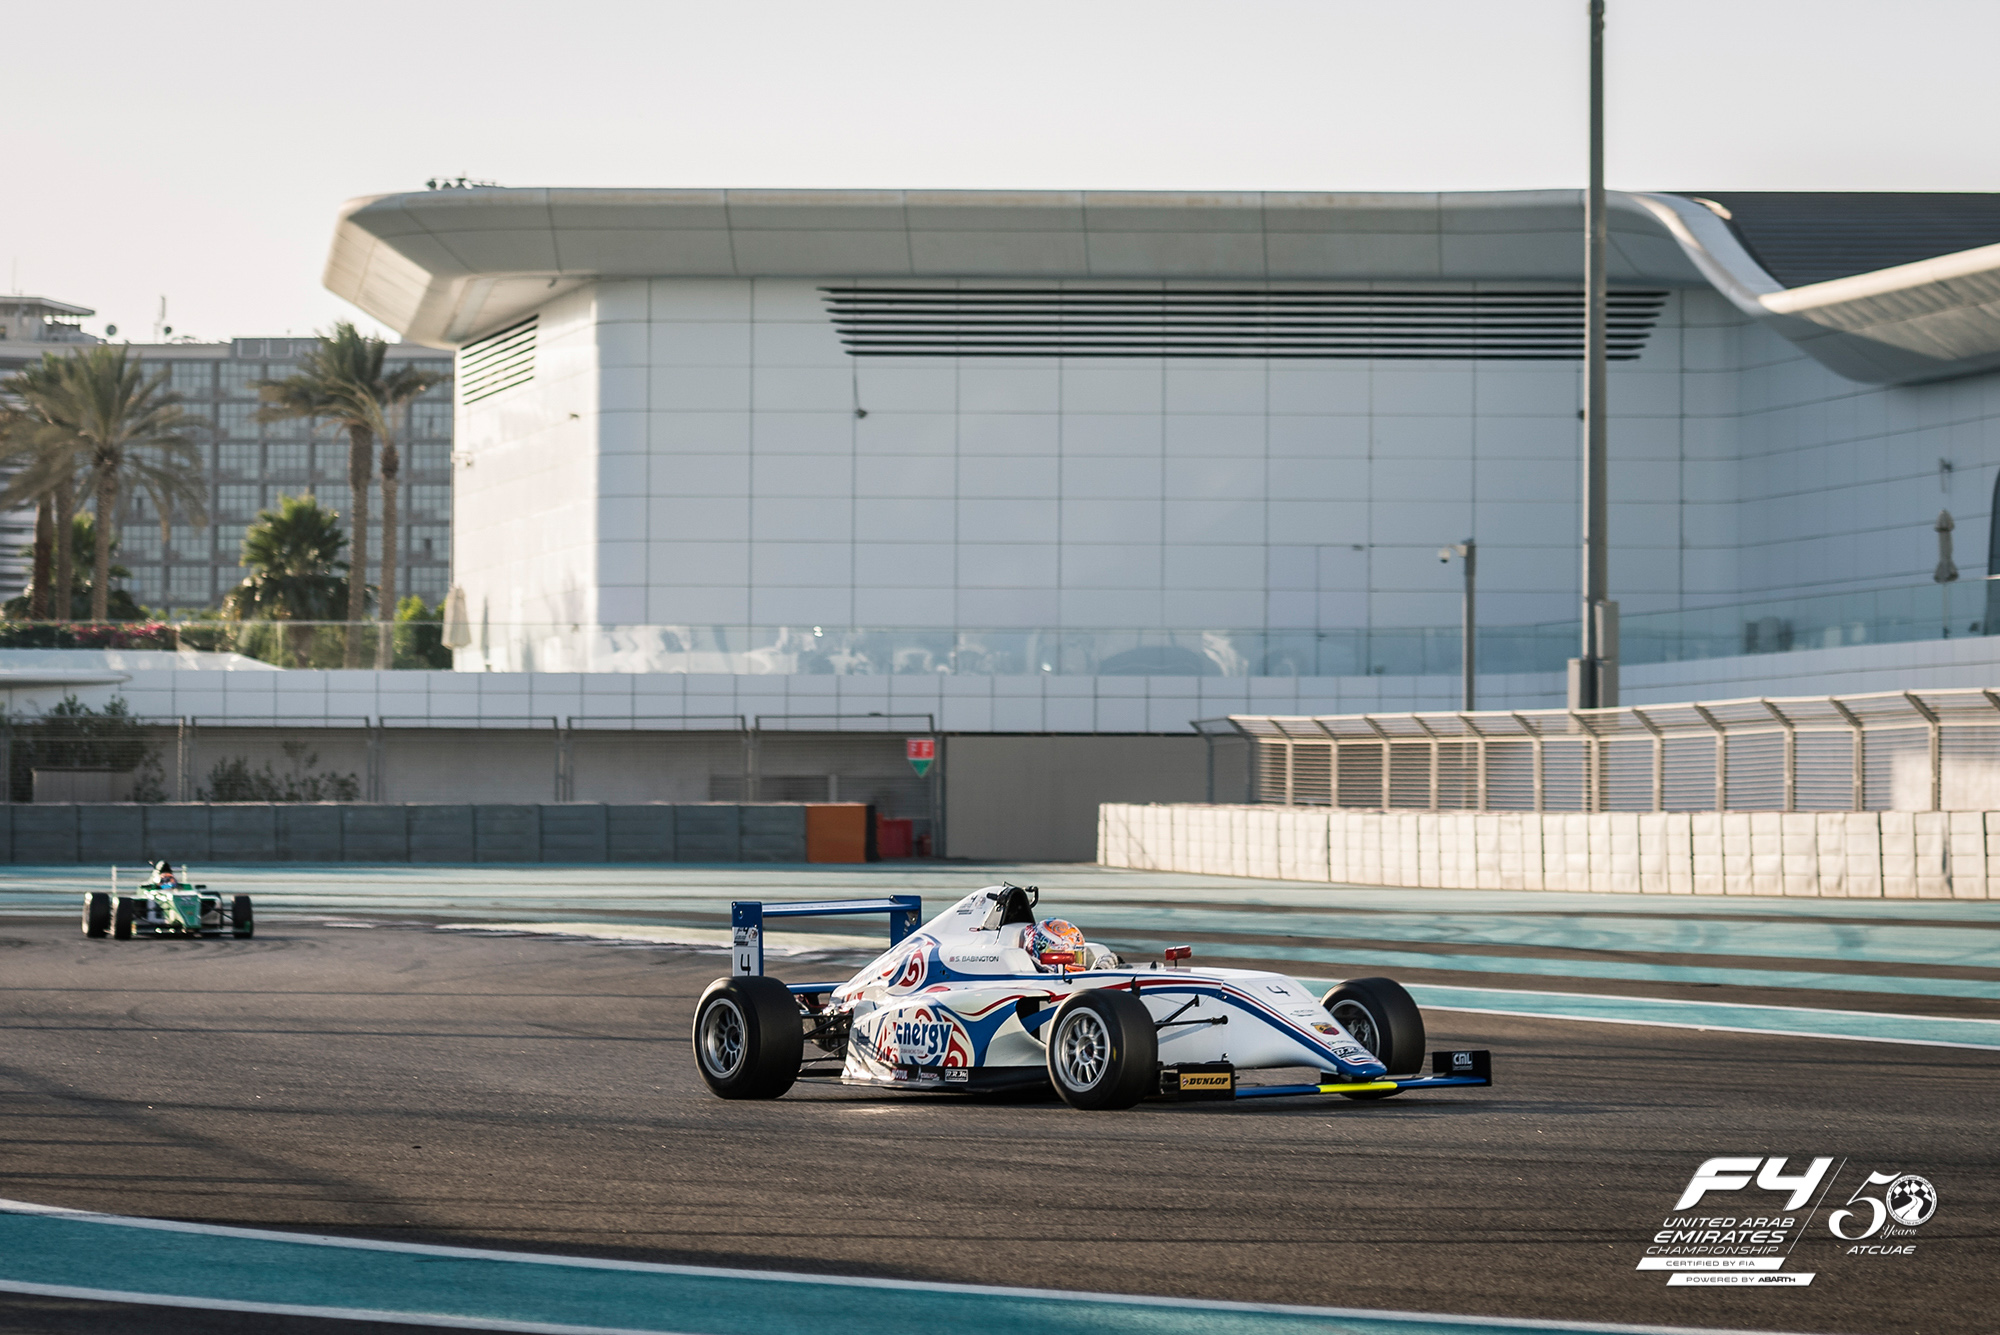 2016 12 18   F4 Second Roud   Abu Dhabi 34 Of 39